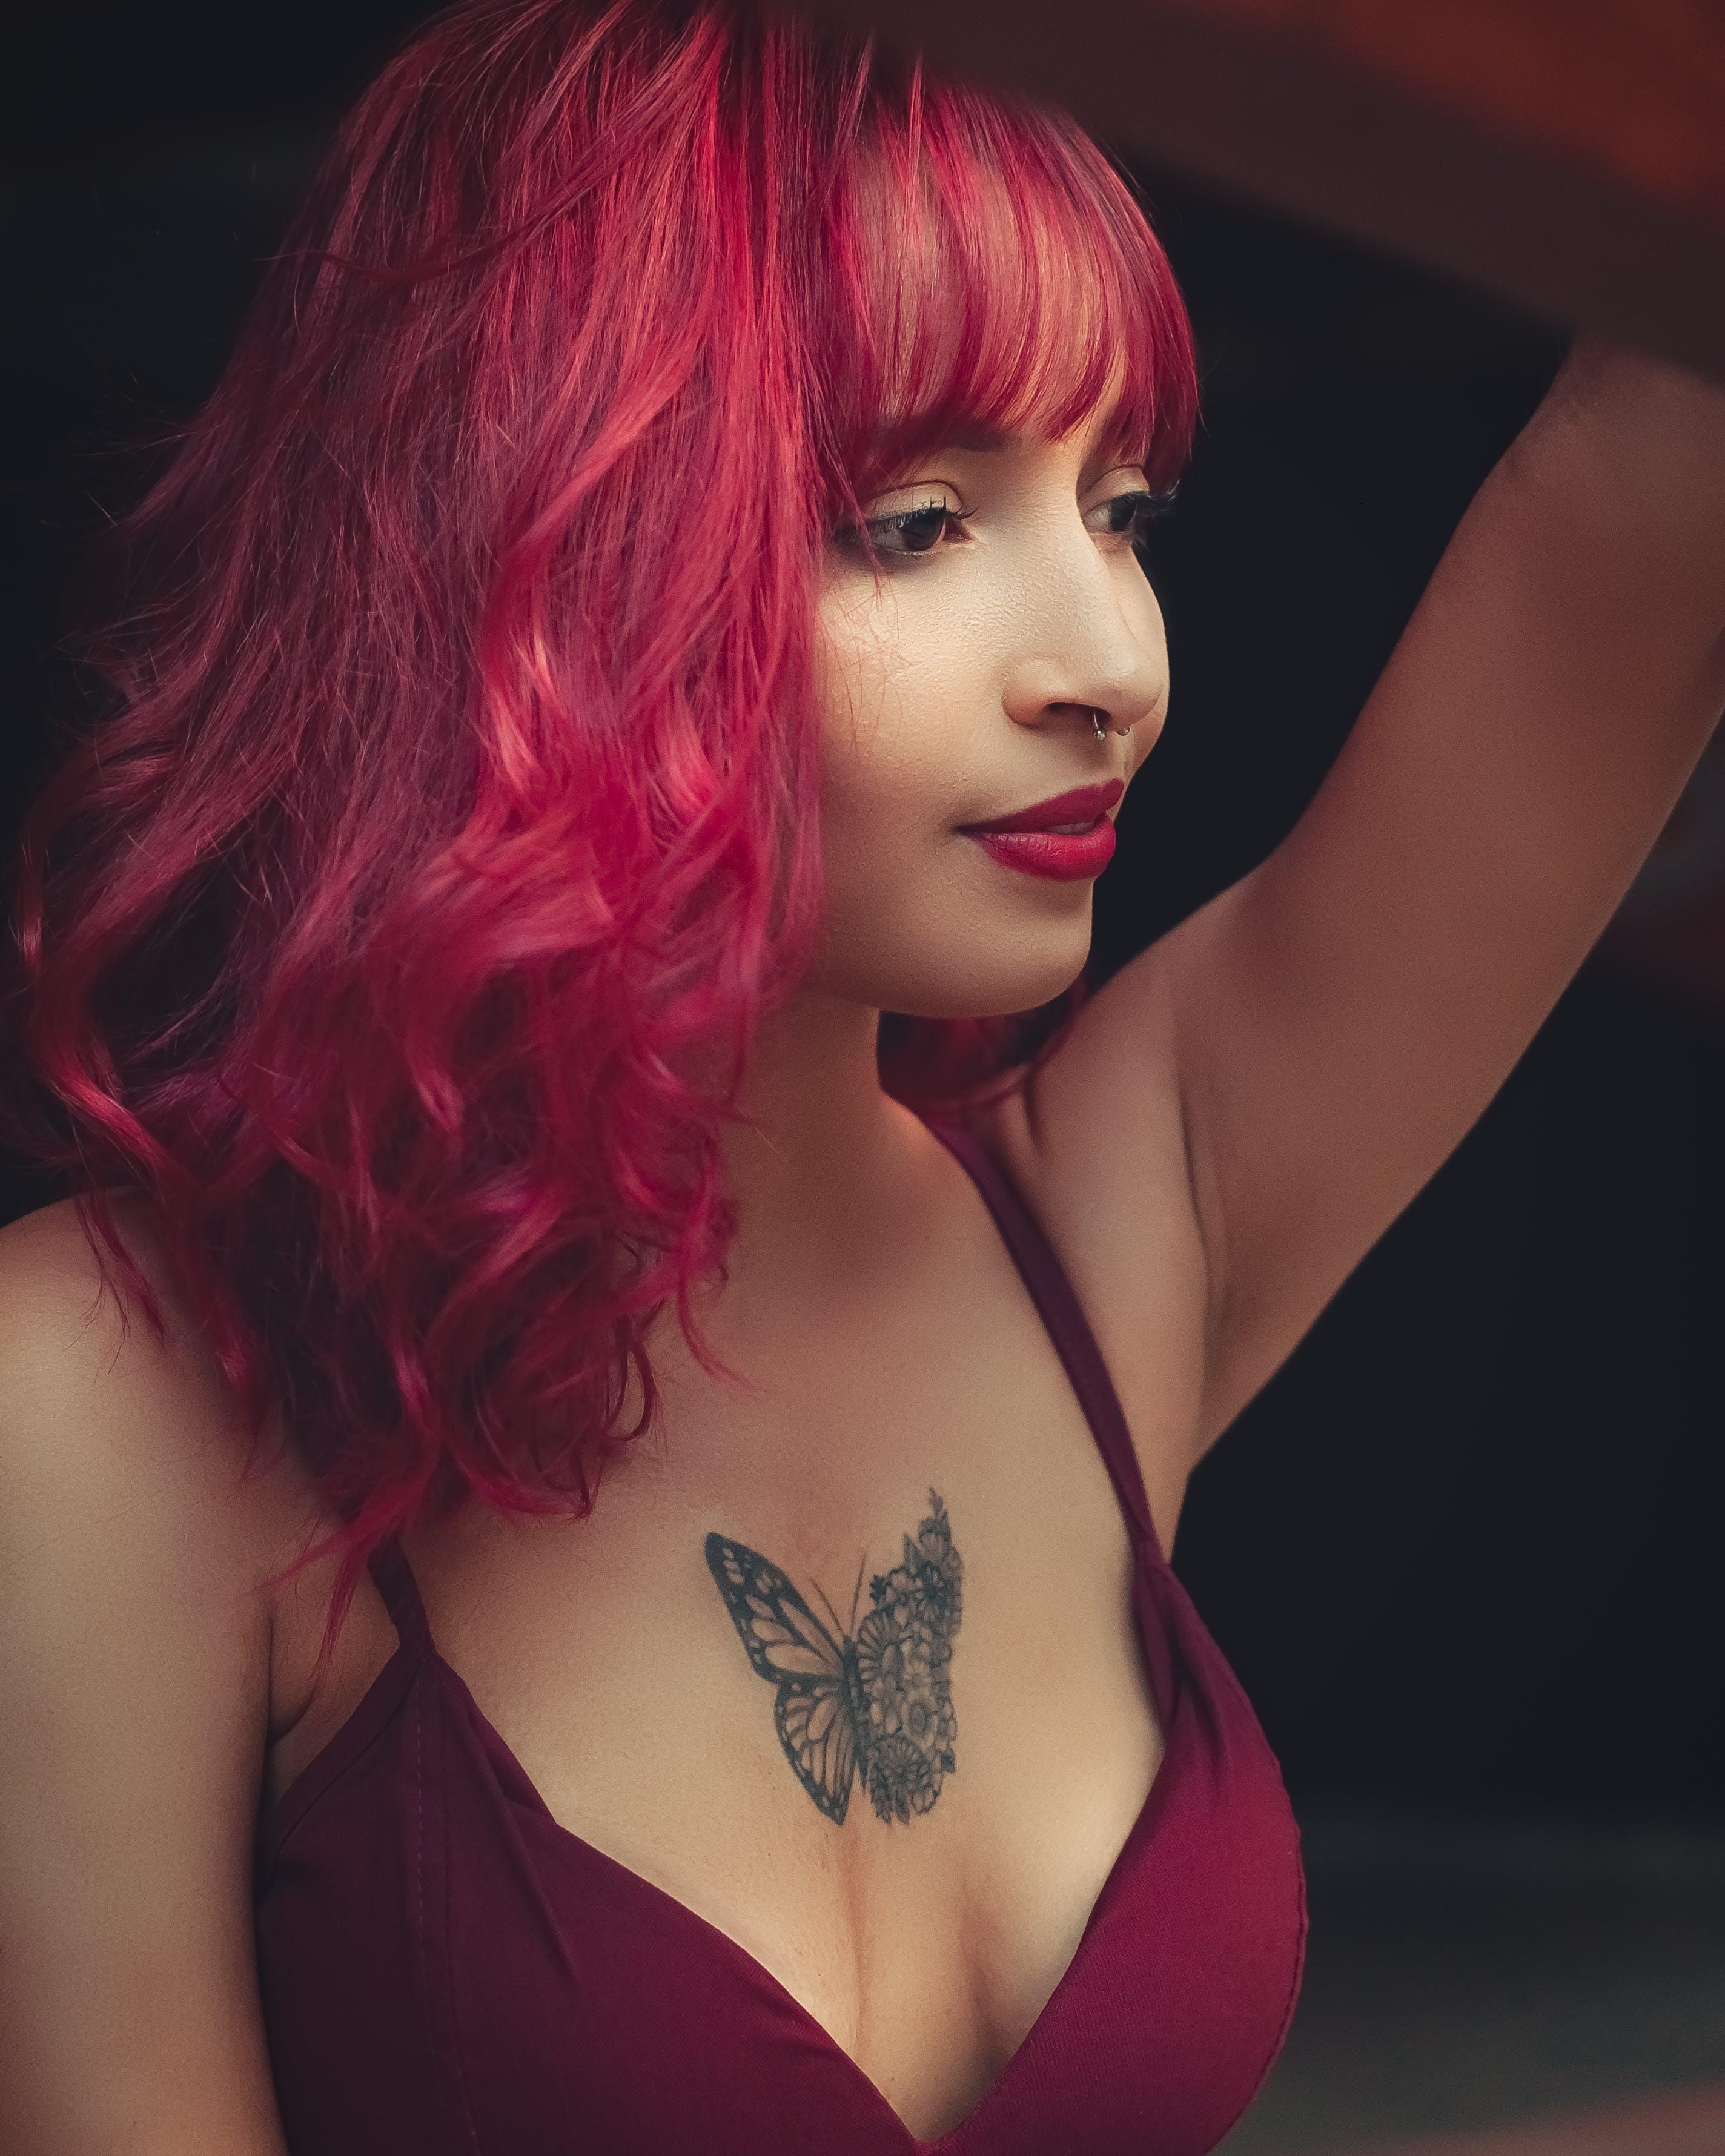 Woman Wearing Bra With Butterfly Tattoo On Chest